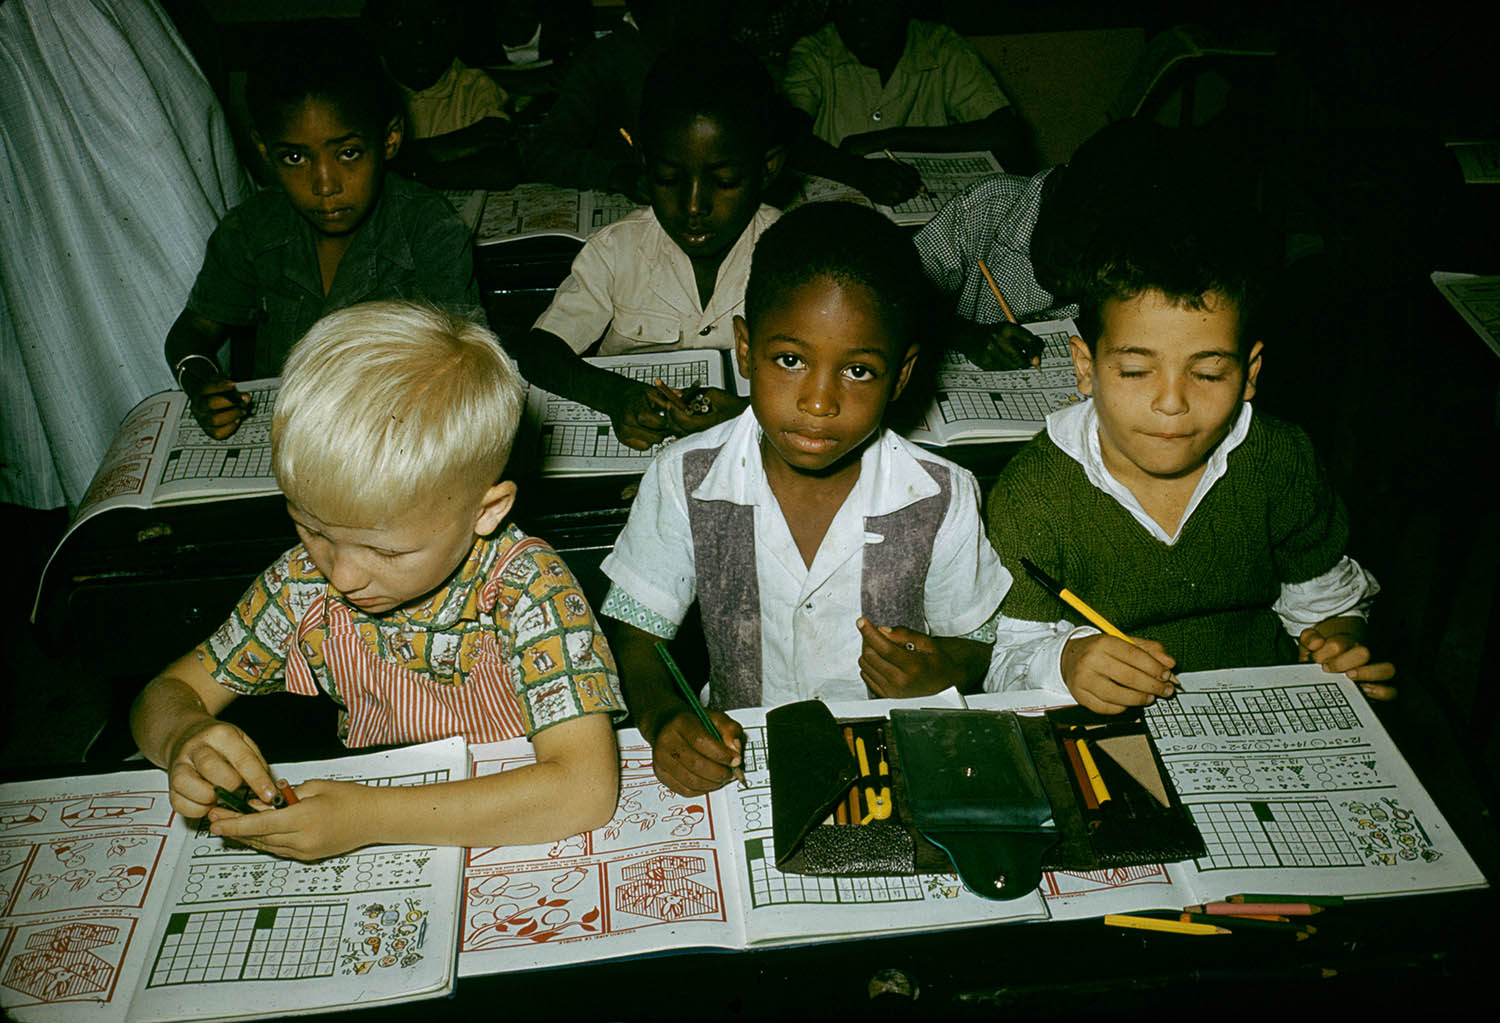 African History Project - 1961 students Democratic Republic of the Congo, integrated classroom with diverse students copy